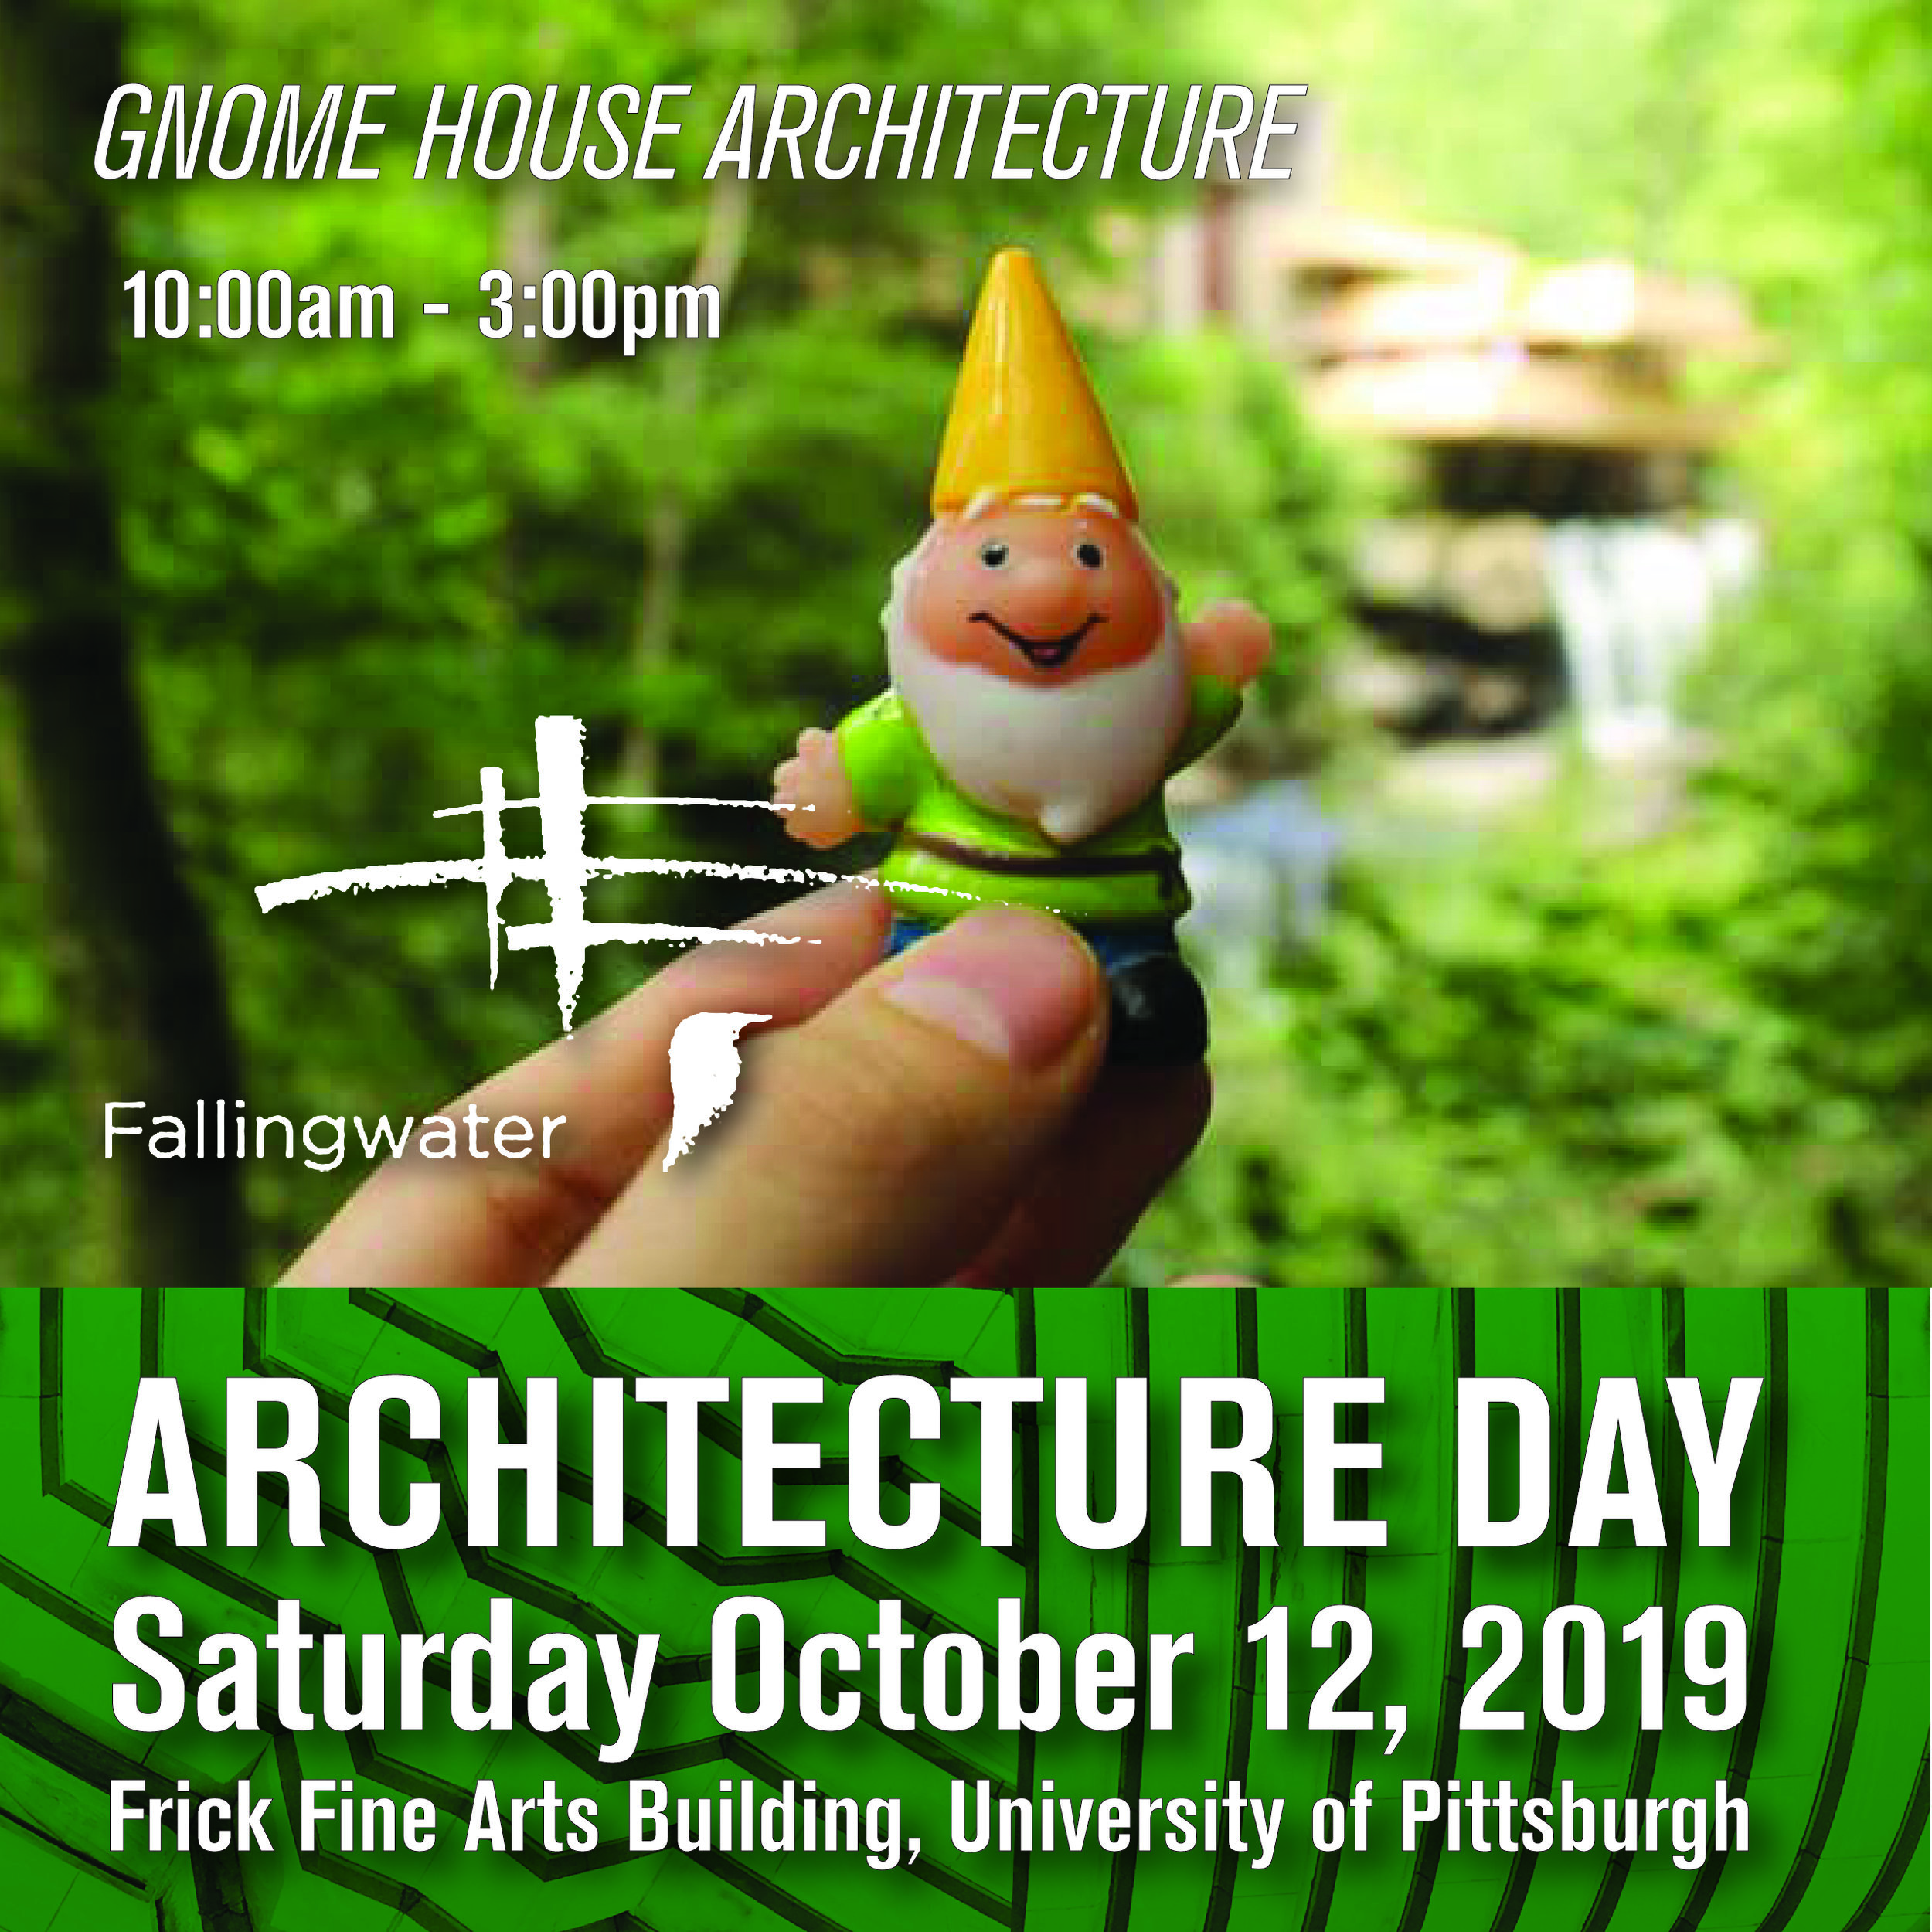 Gnome House with Fallingwater 10:00am-3:00pm